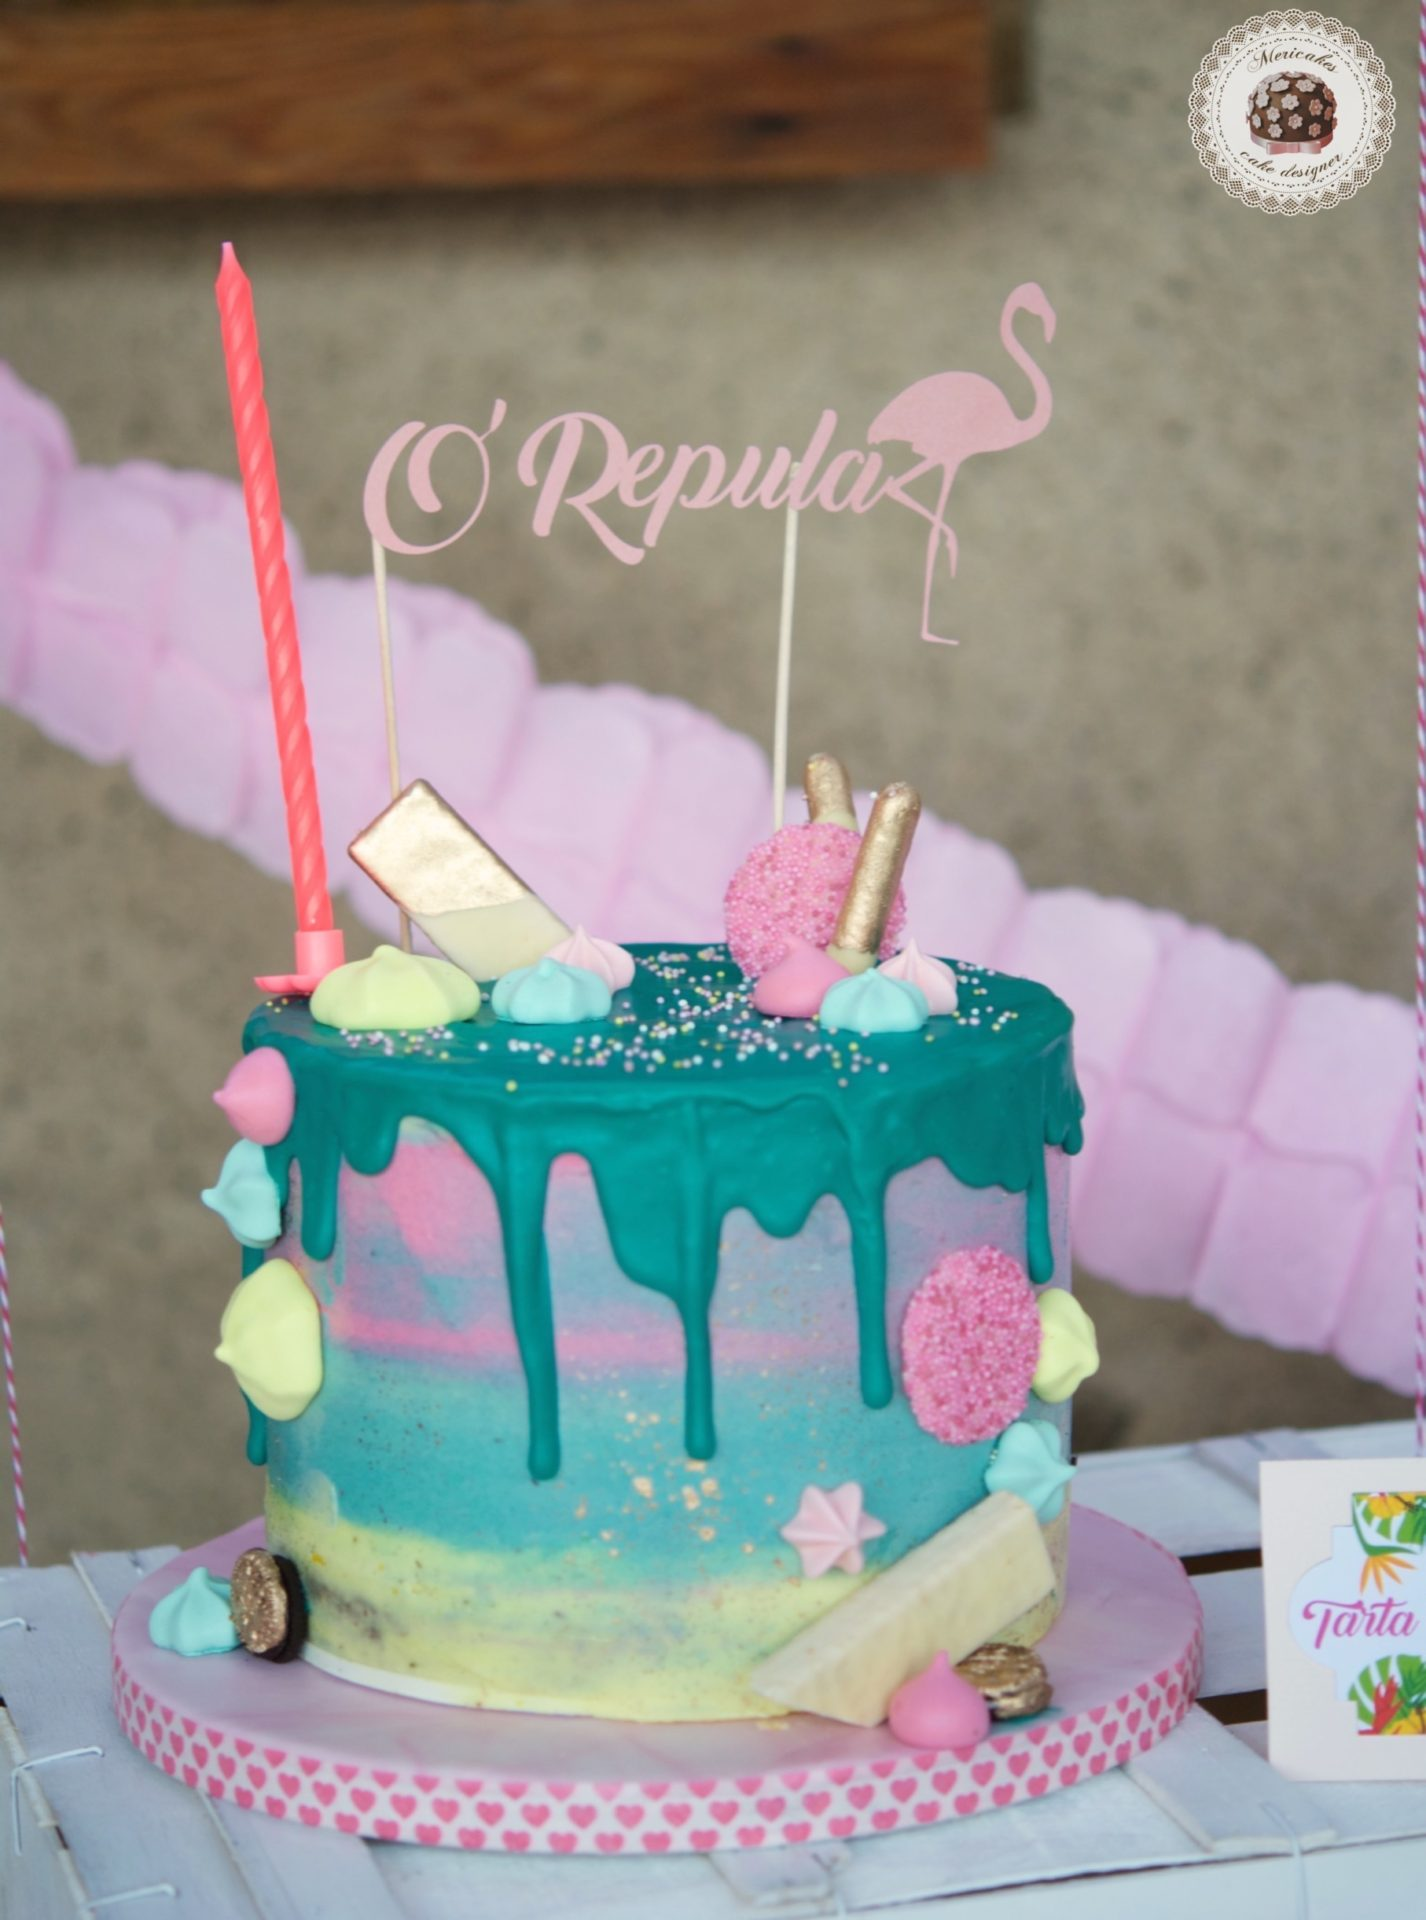 Mesa dulce, party pool, flamingo, dessert table, drip cake, pop corn, palomitas, cupcakes, meringue kisses, mericakes, barcelona 4